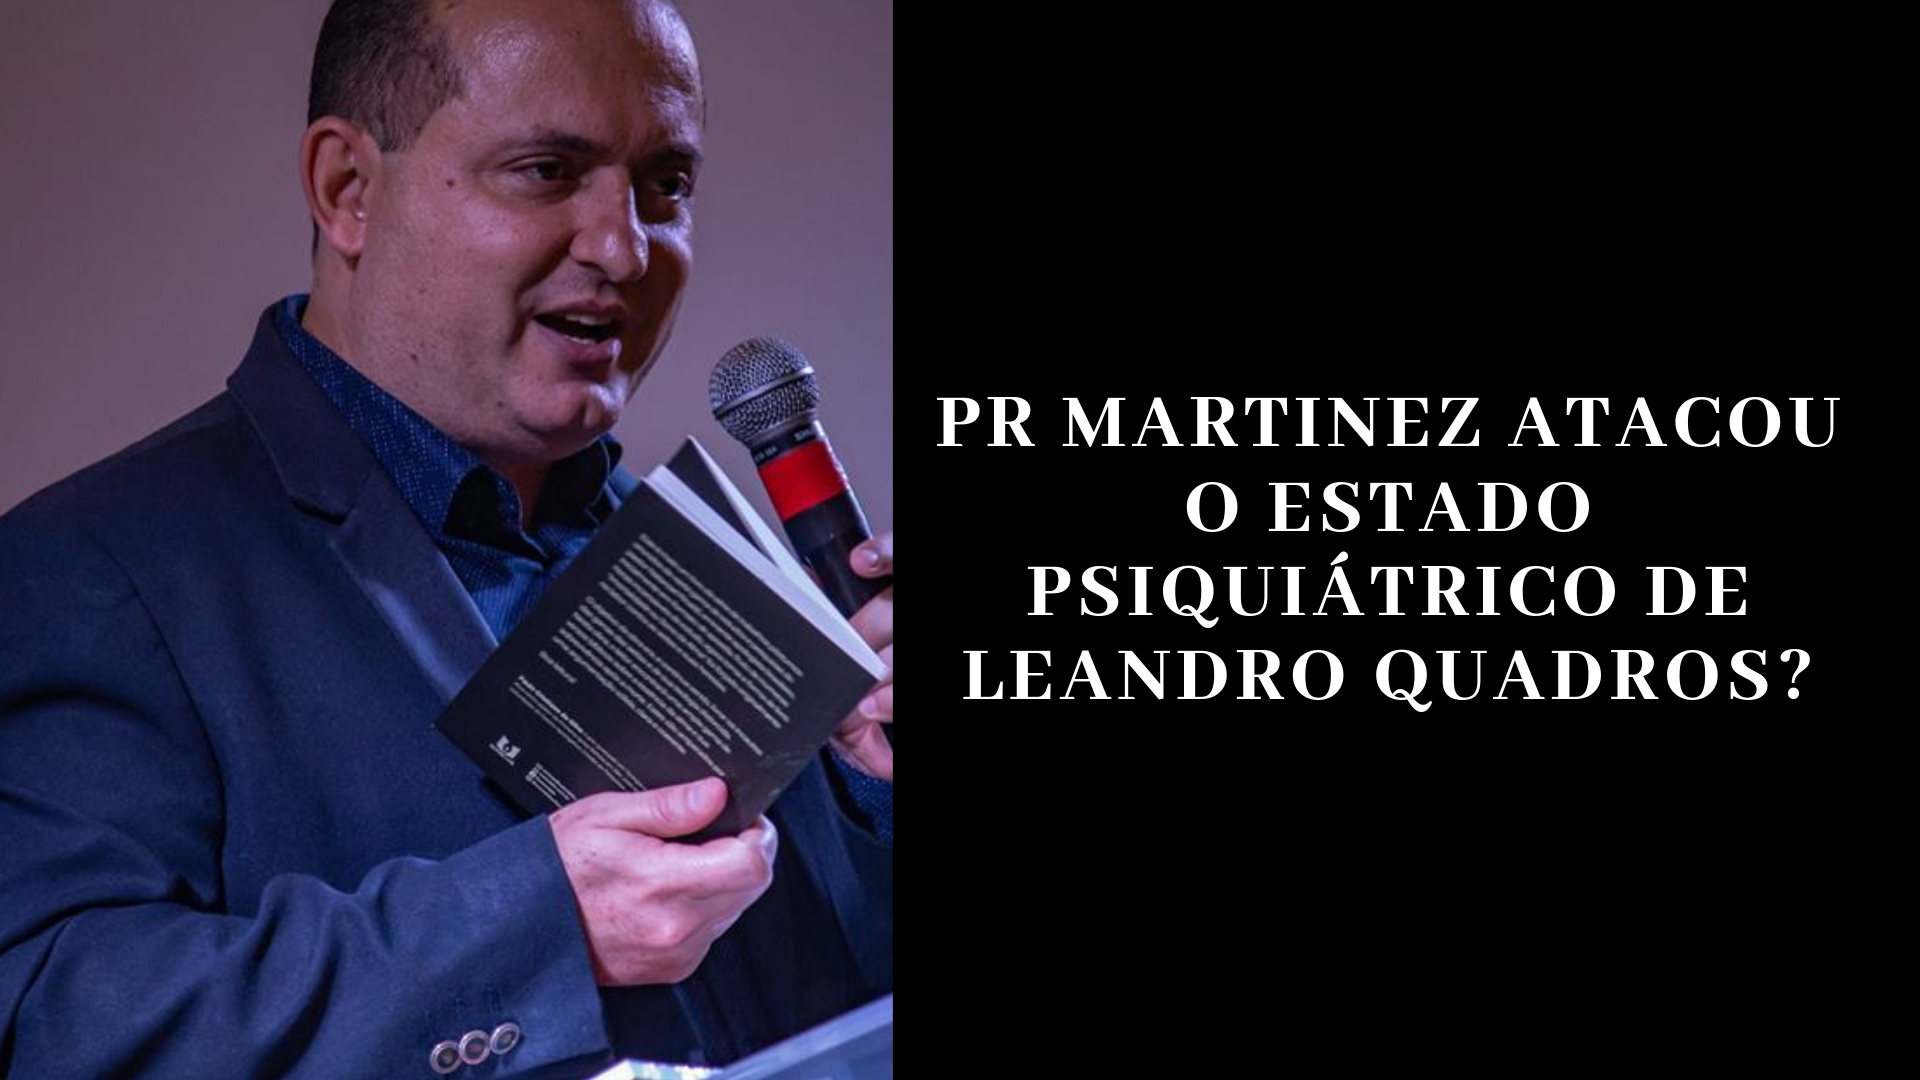 Pr Martinez atacou o estado Psiquiátrico do L. Quadros?